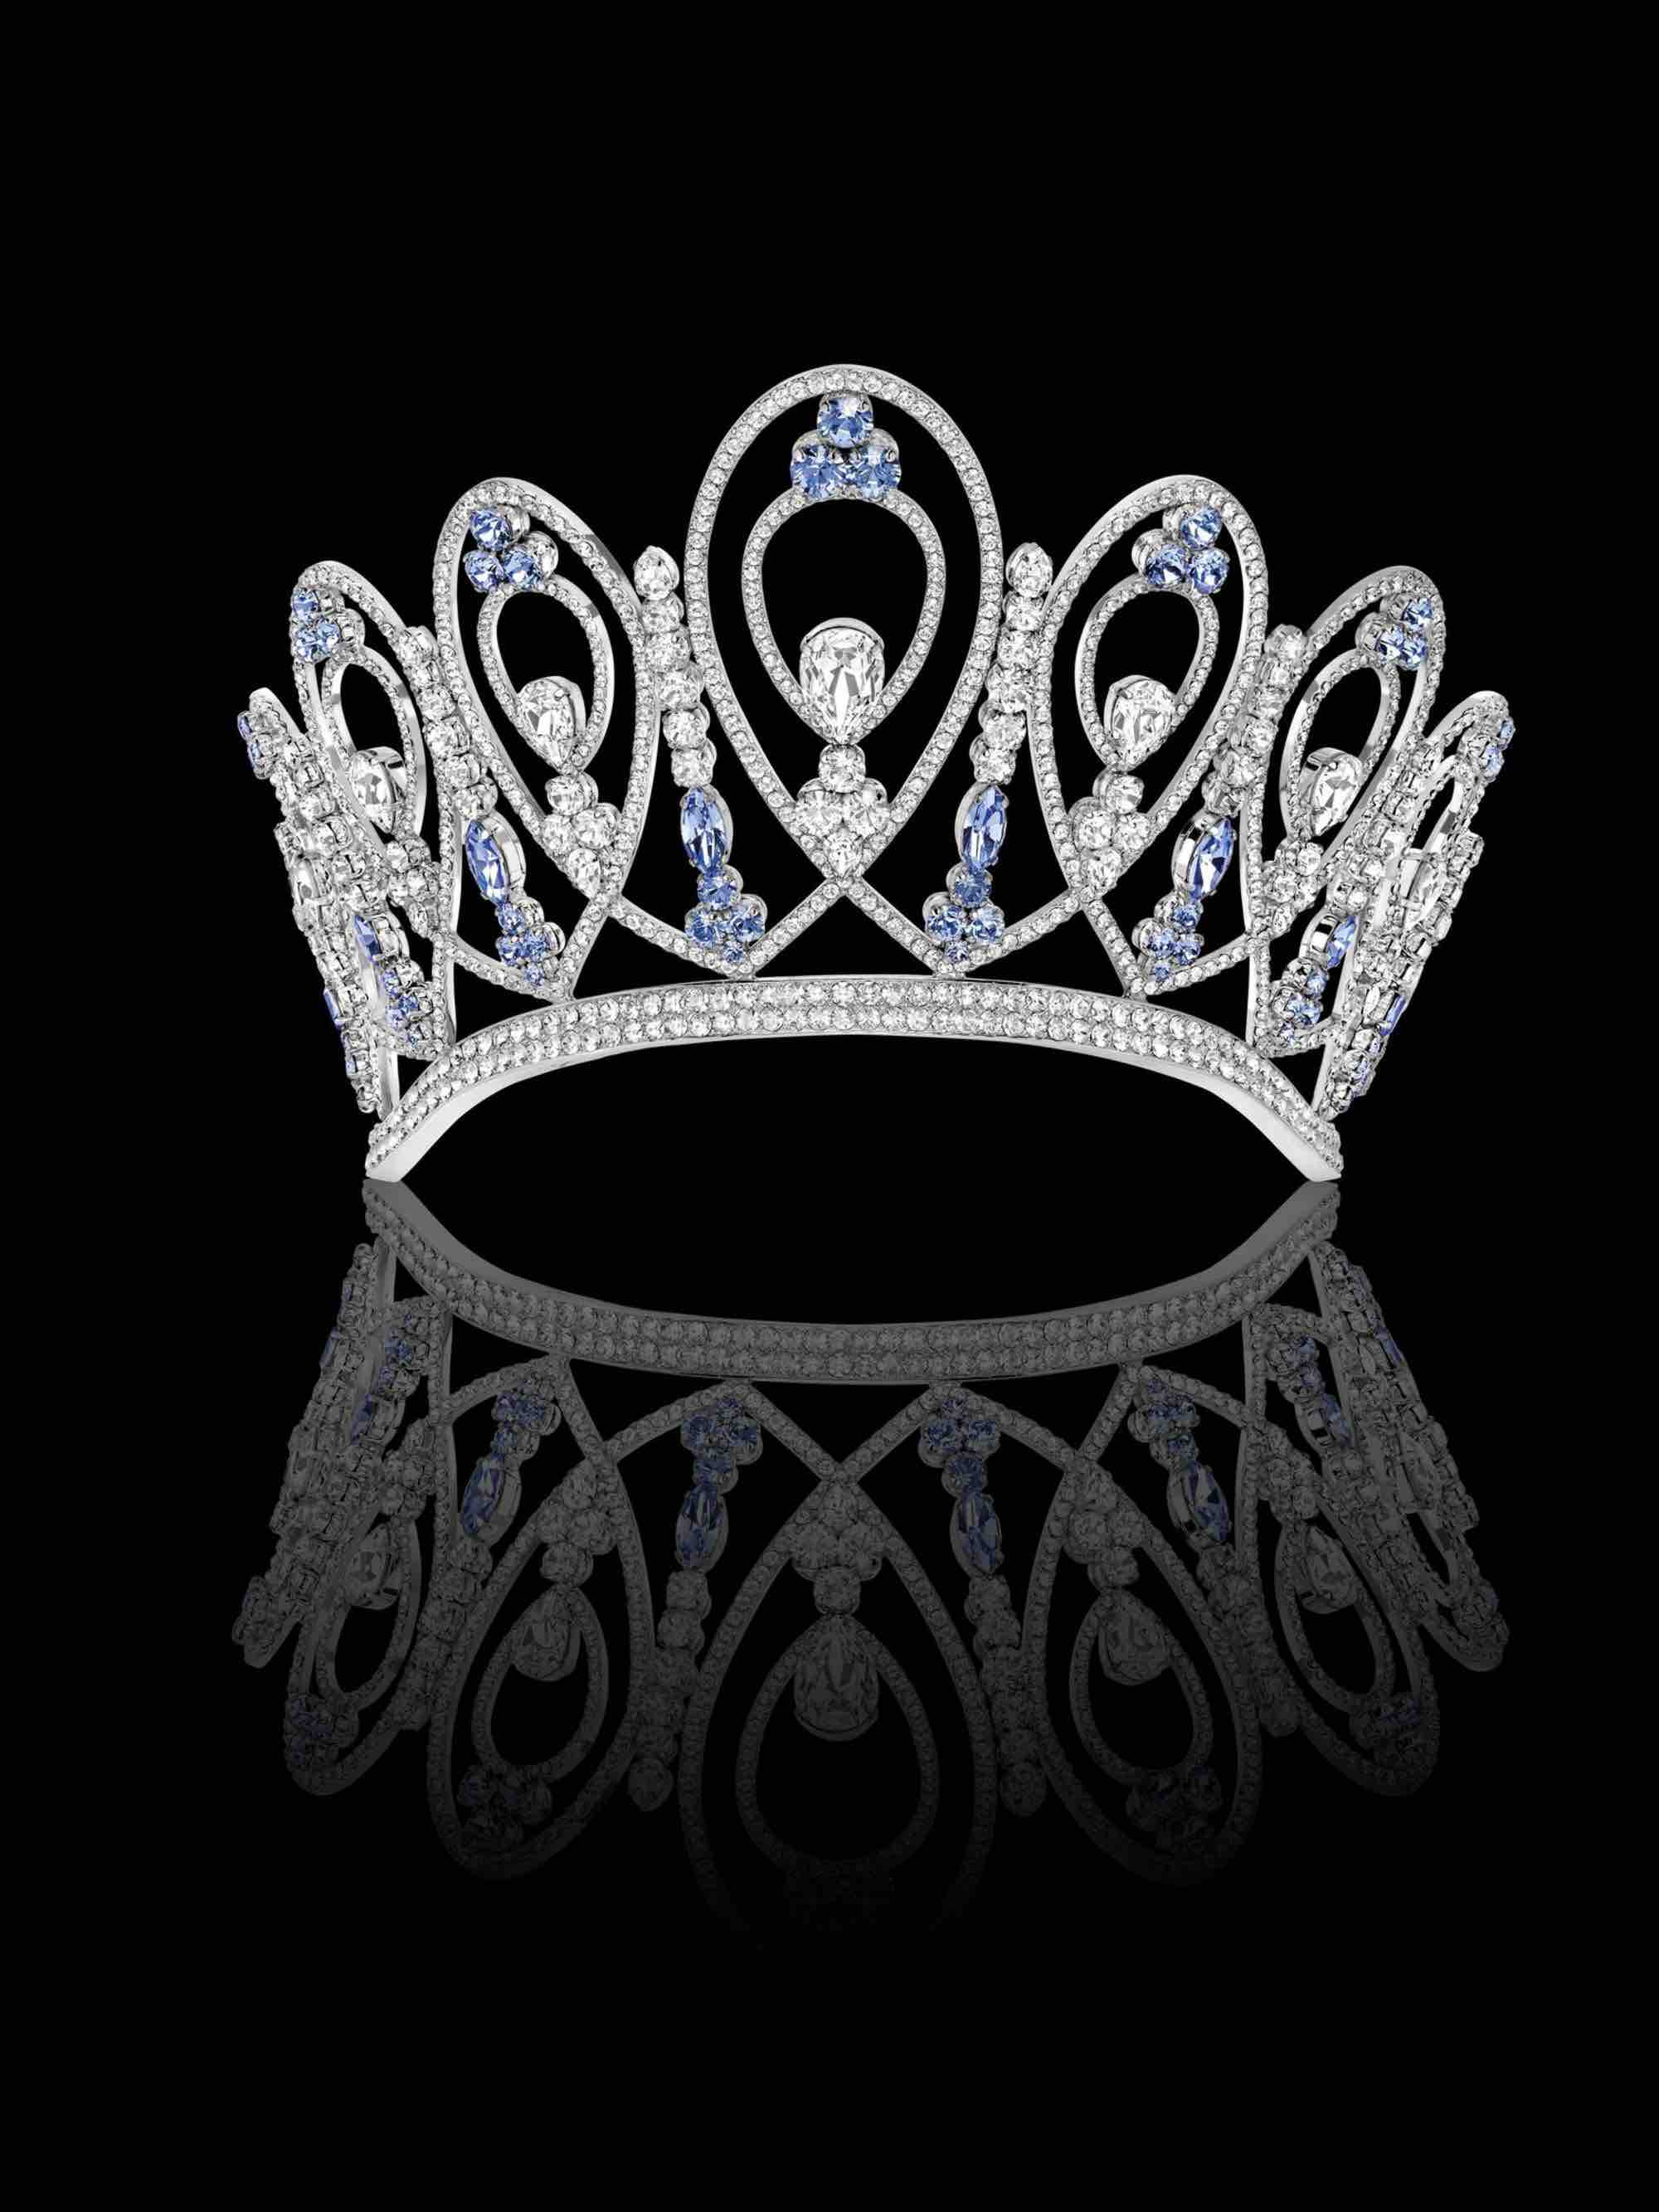 Miss France 2018 couronne